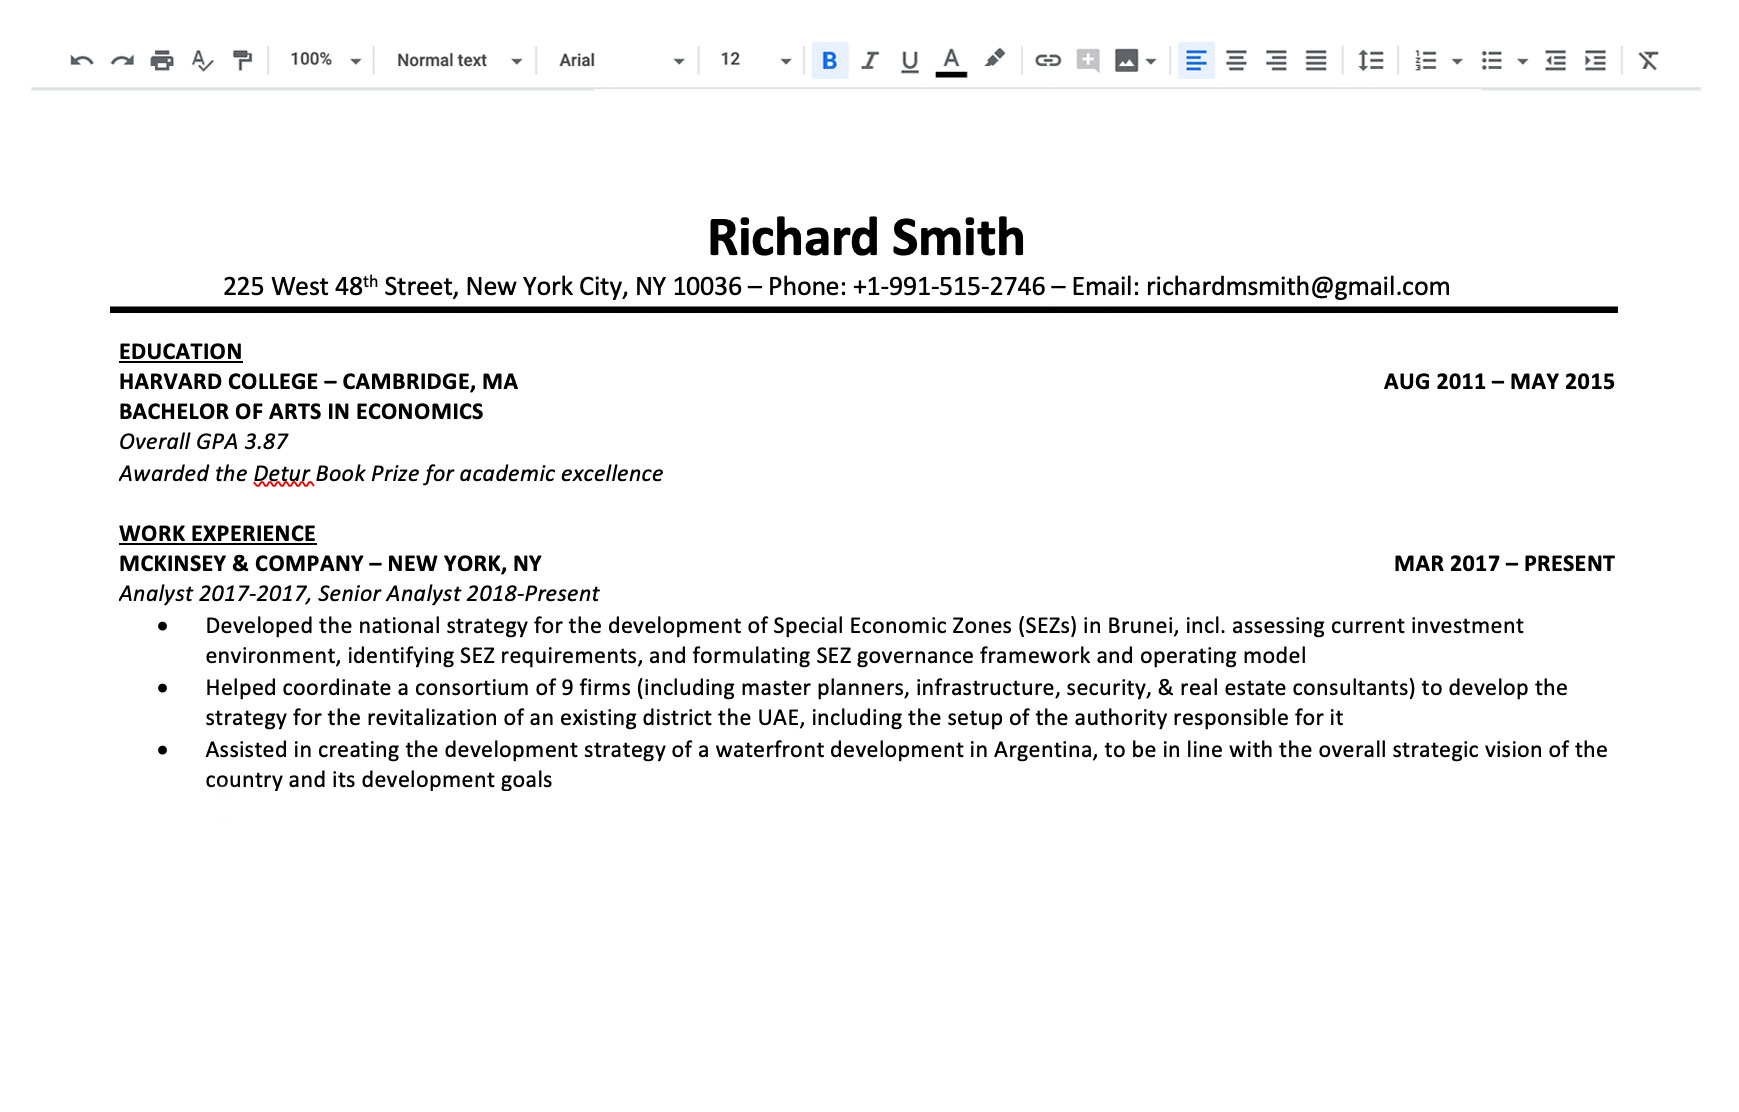 image of before the editing of the curriculum vitae